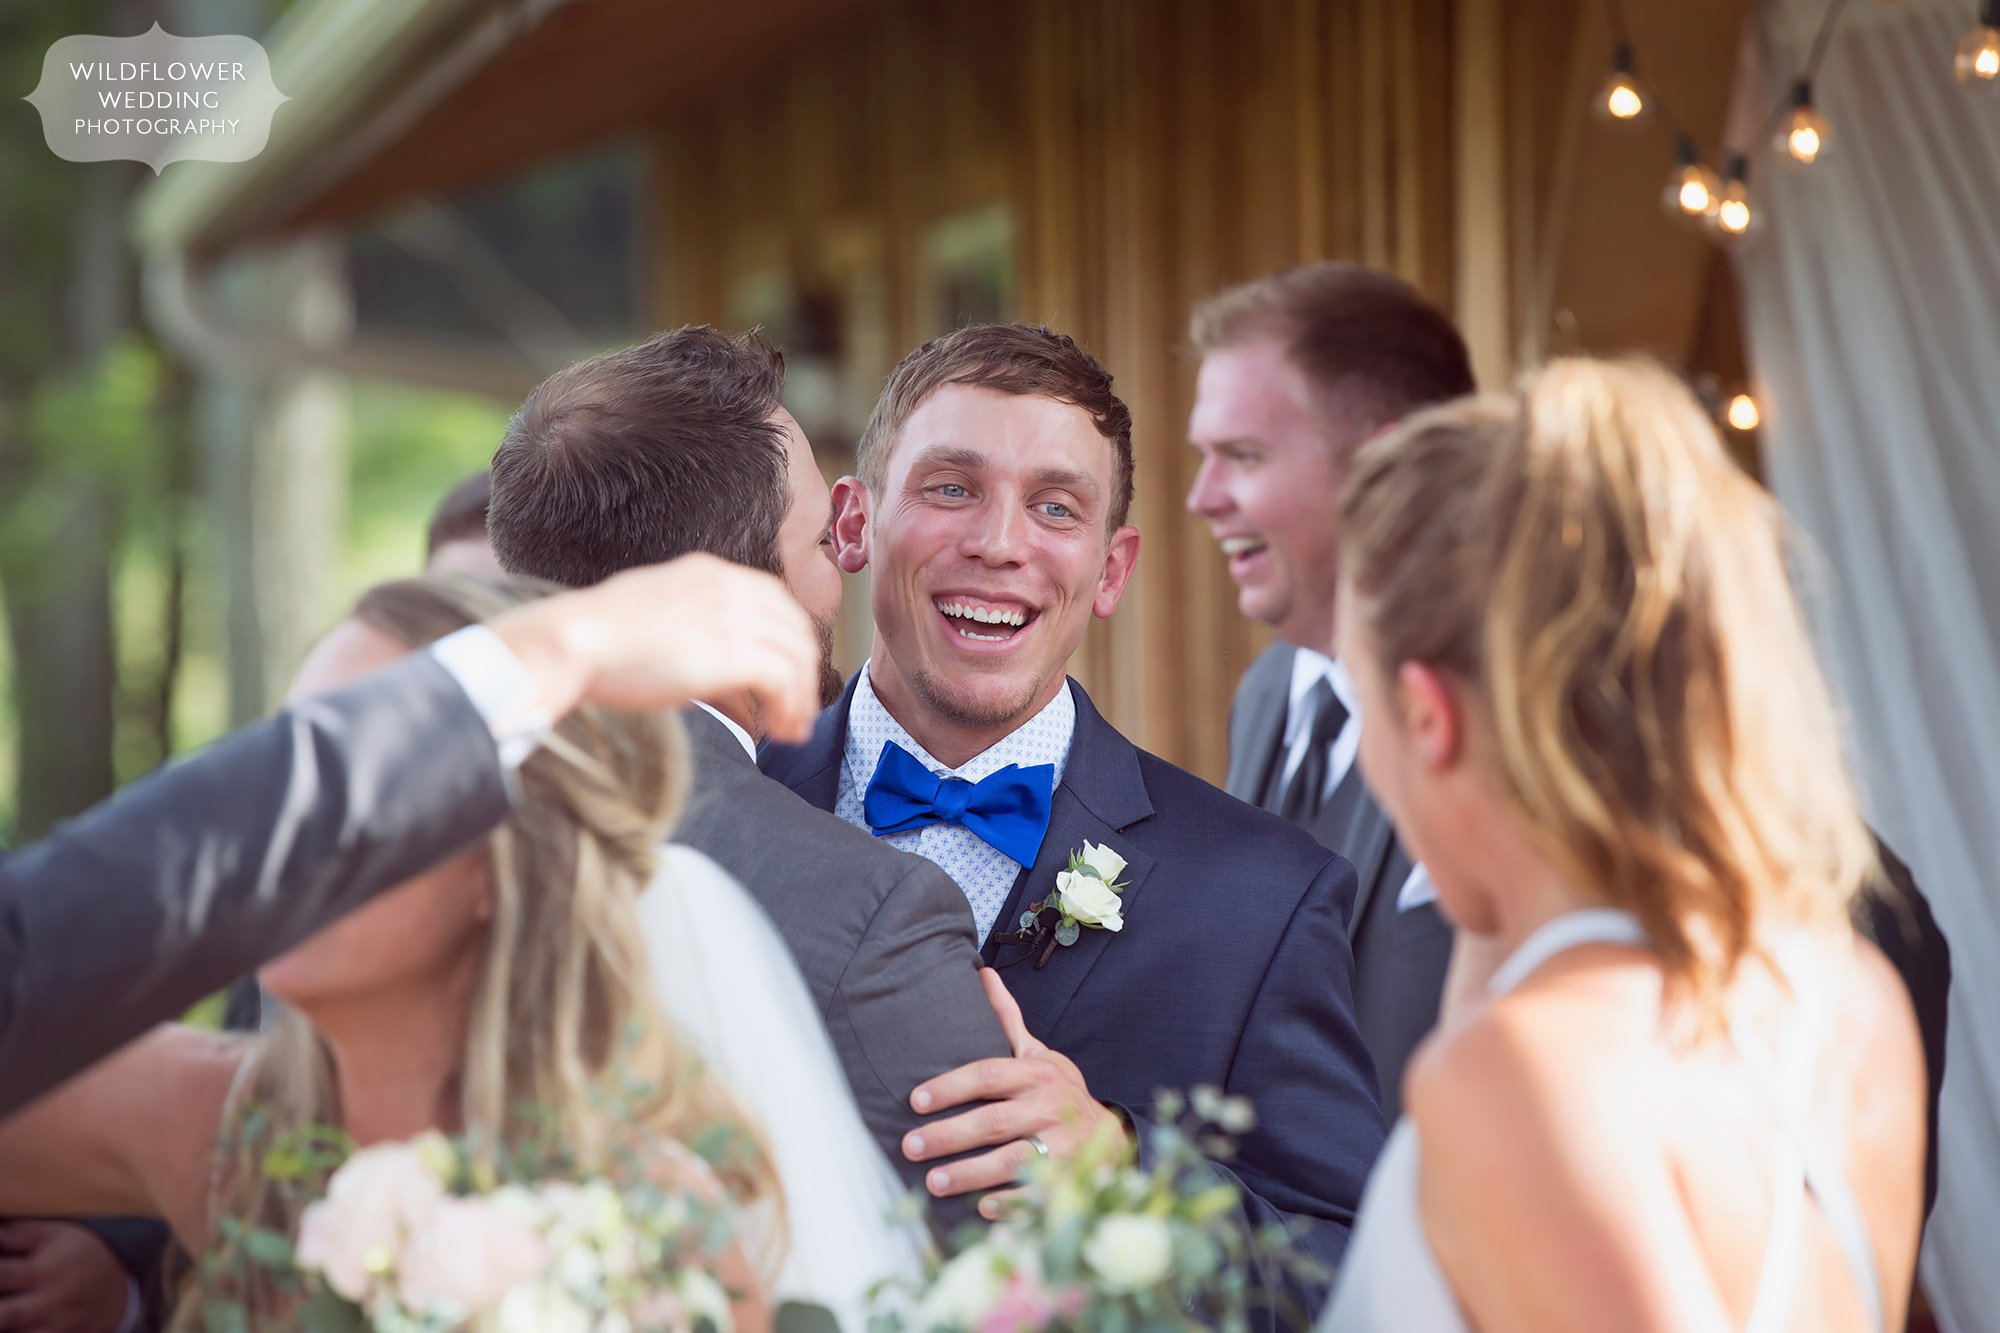 Love this bright and colorful photo of the groom smiling as friends hug him after the barn ceremony in southern MO.